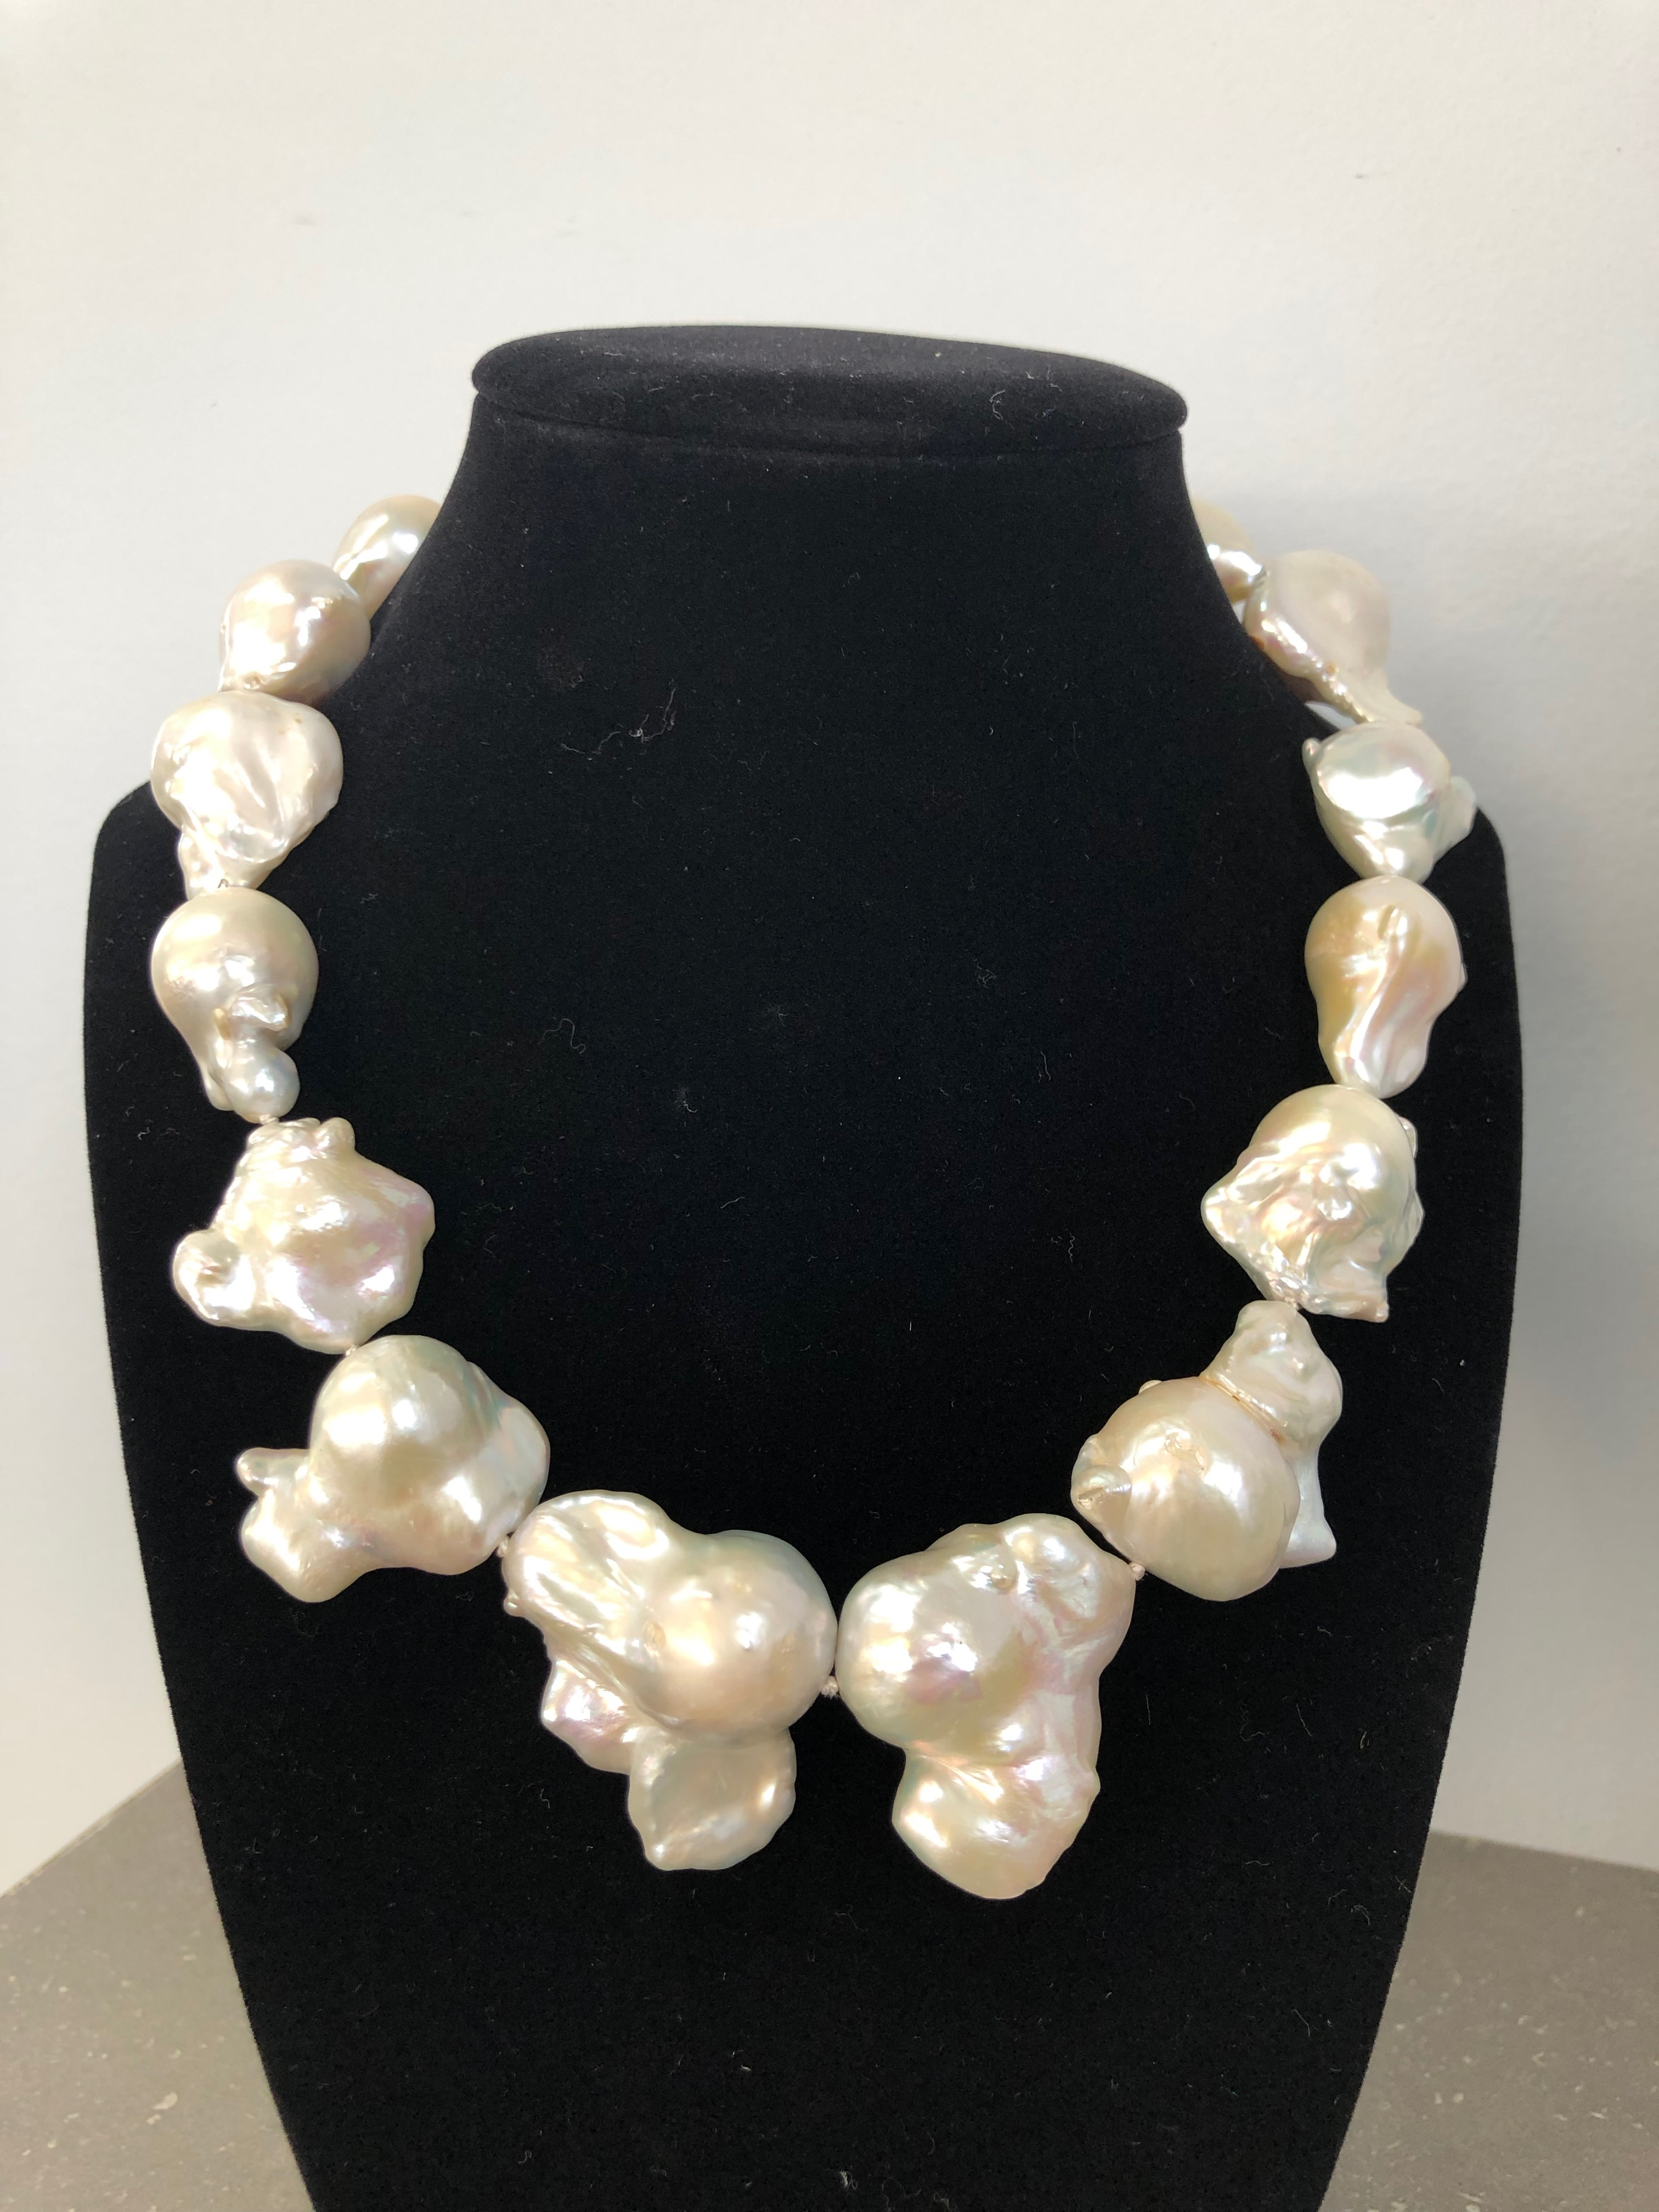 Freshwater White Baroque Pearl Necklace